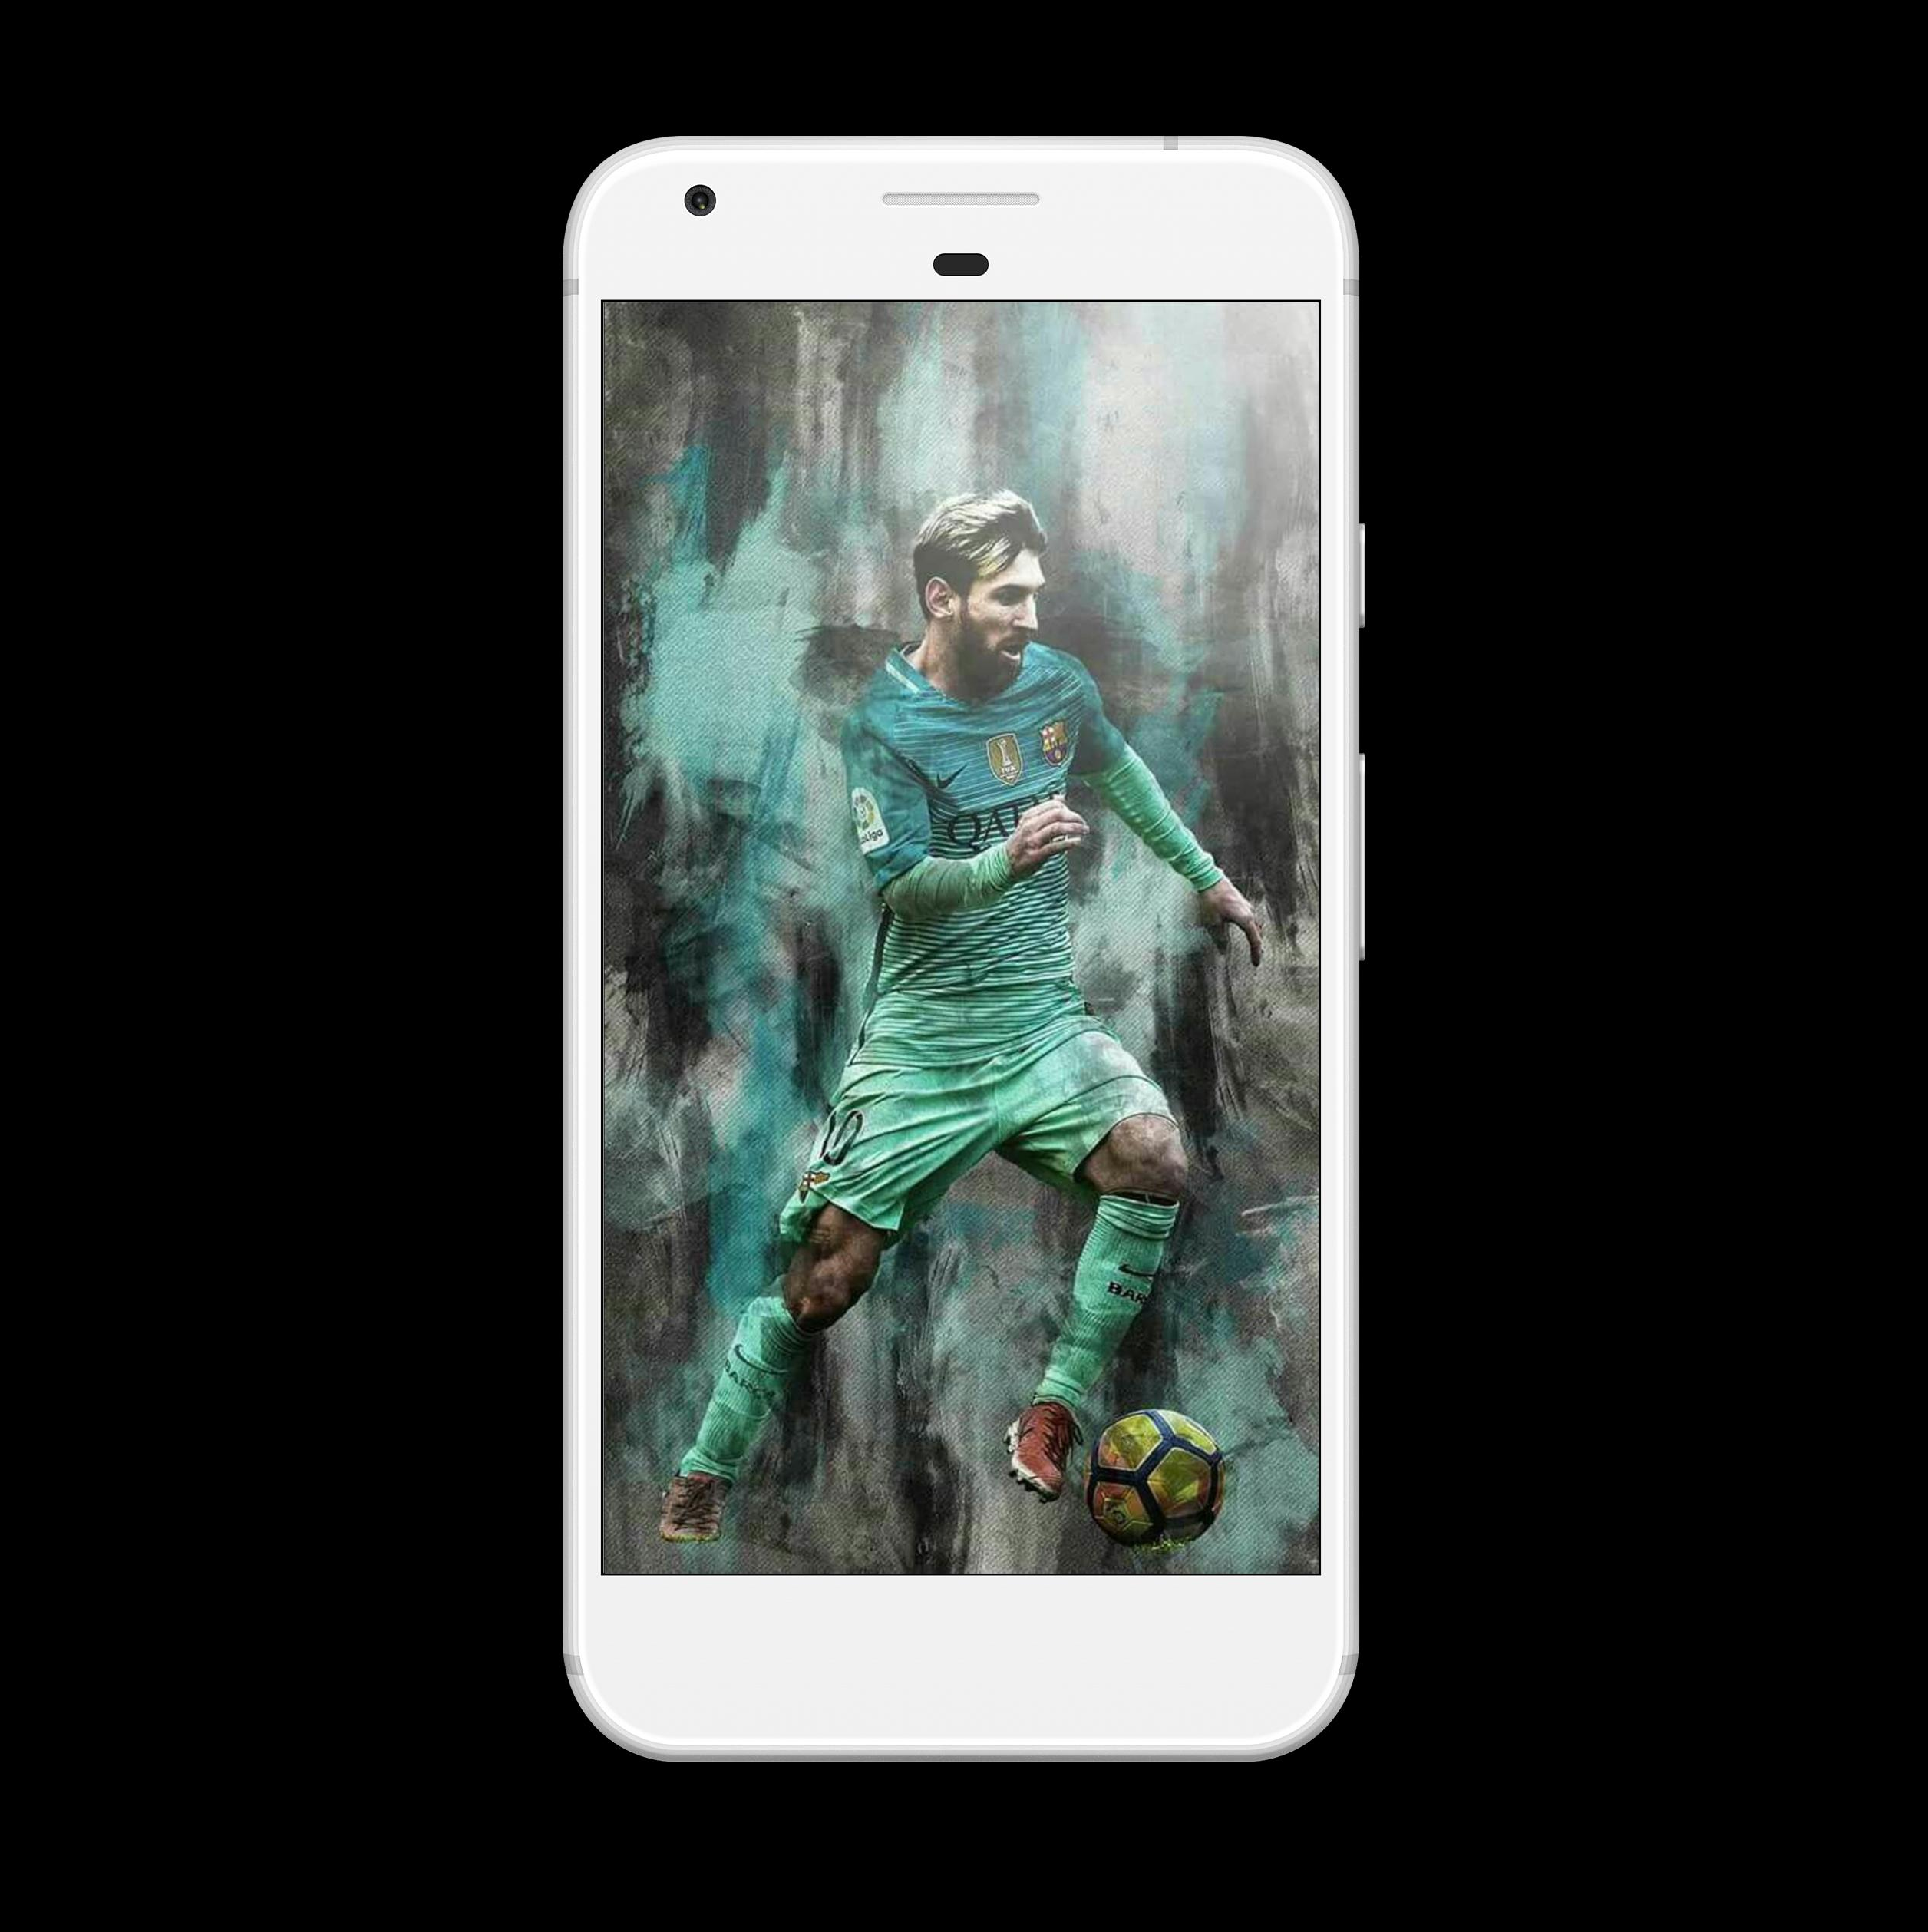 Bola Soccer Football Wallpaper For Android APK Download